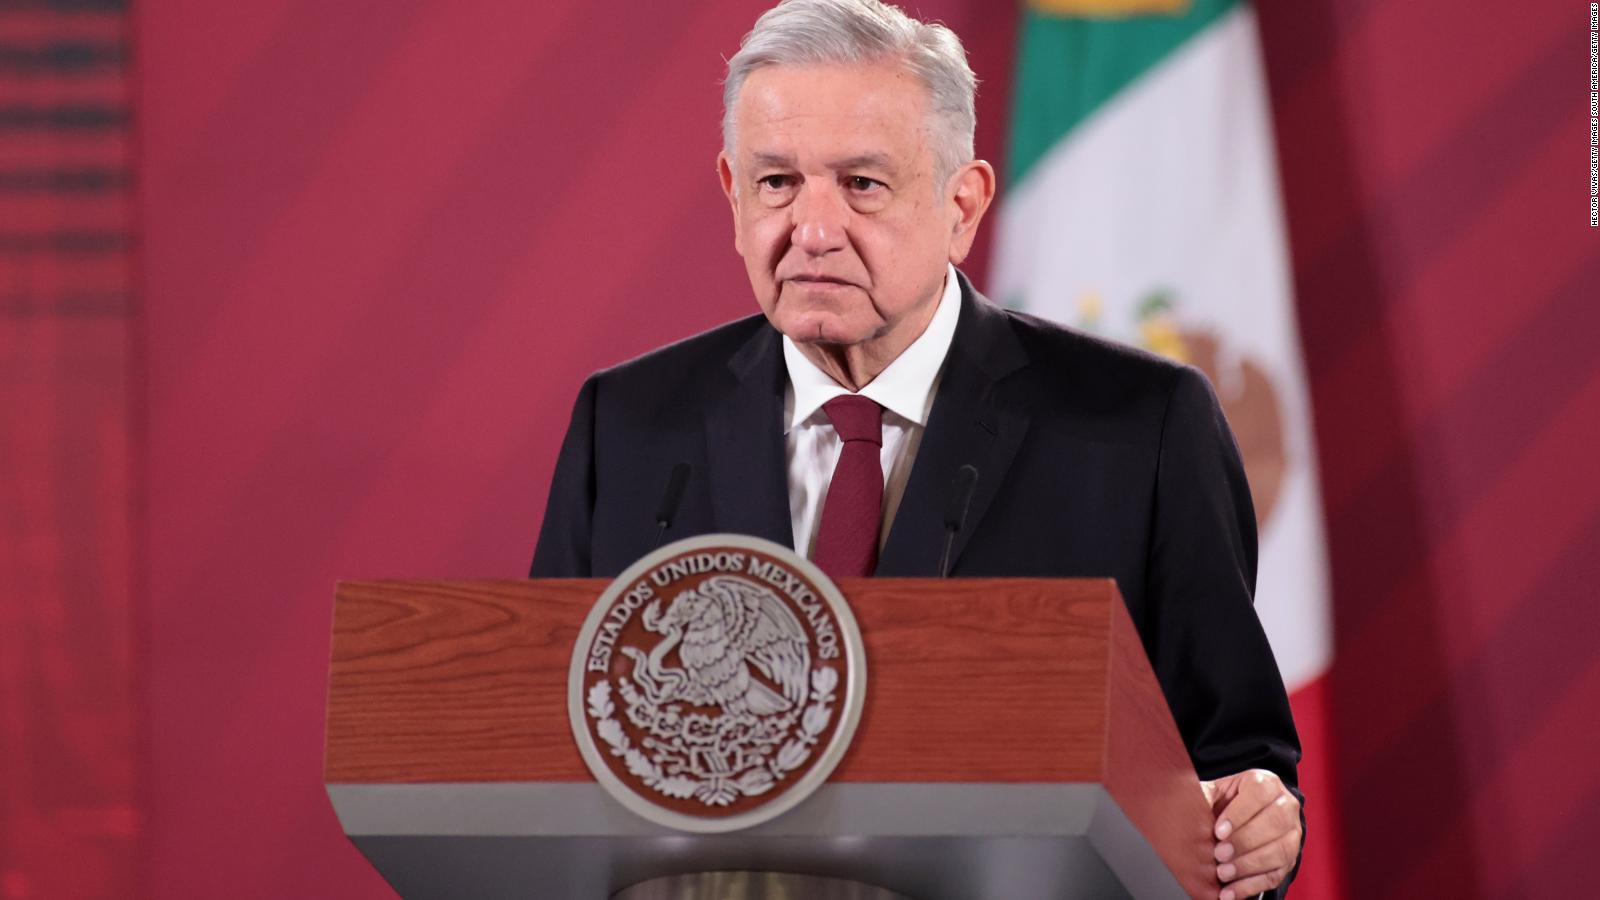 Mexican President Andres Manuel Lopez Obrador tests positive for Covid-19 - CNN